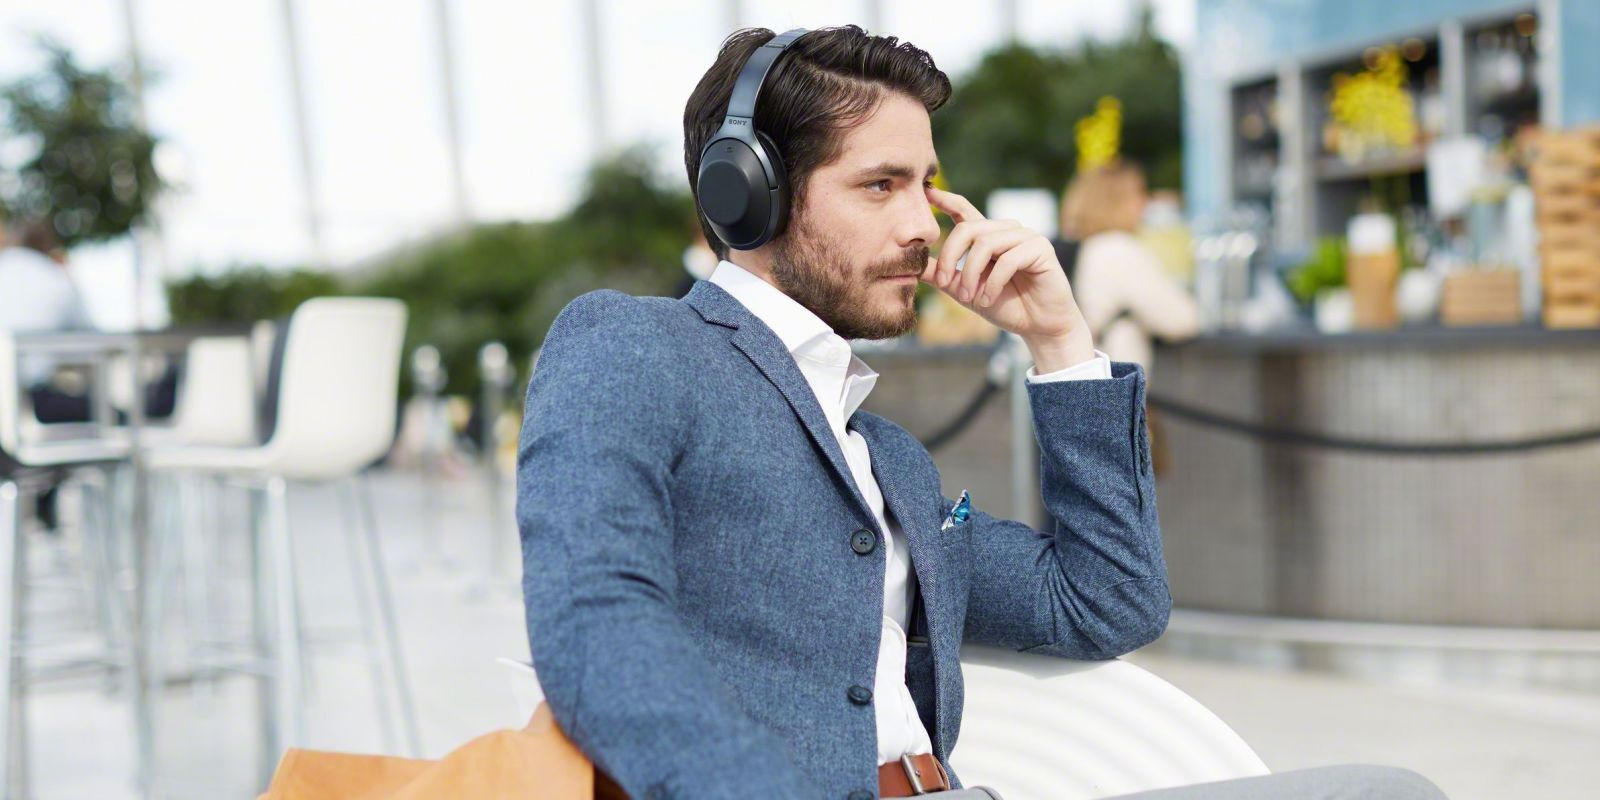 New Sony Mdr 1000x Cans Drop Are These The Best Noise Cancelling Headphone Headphones Ever